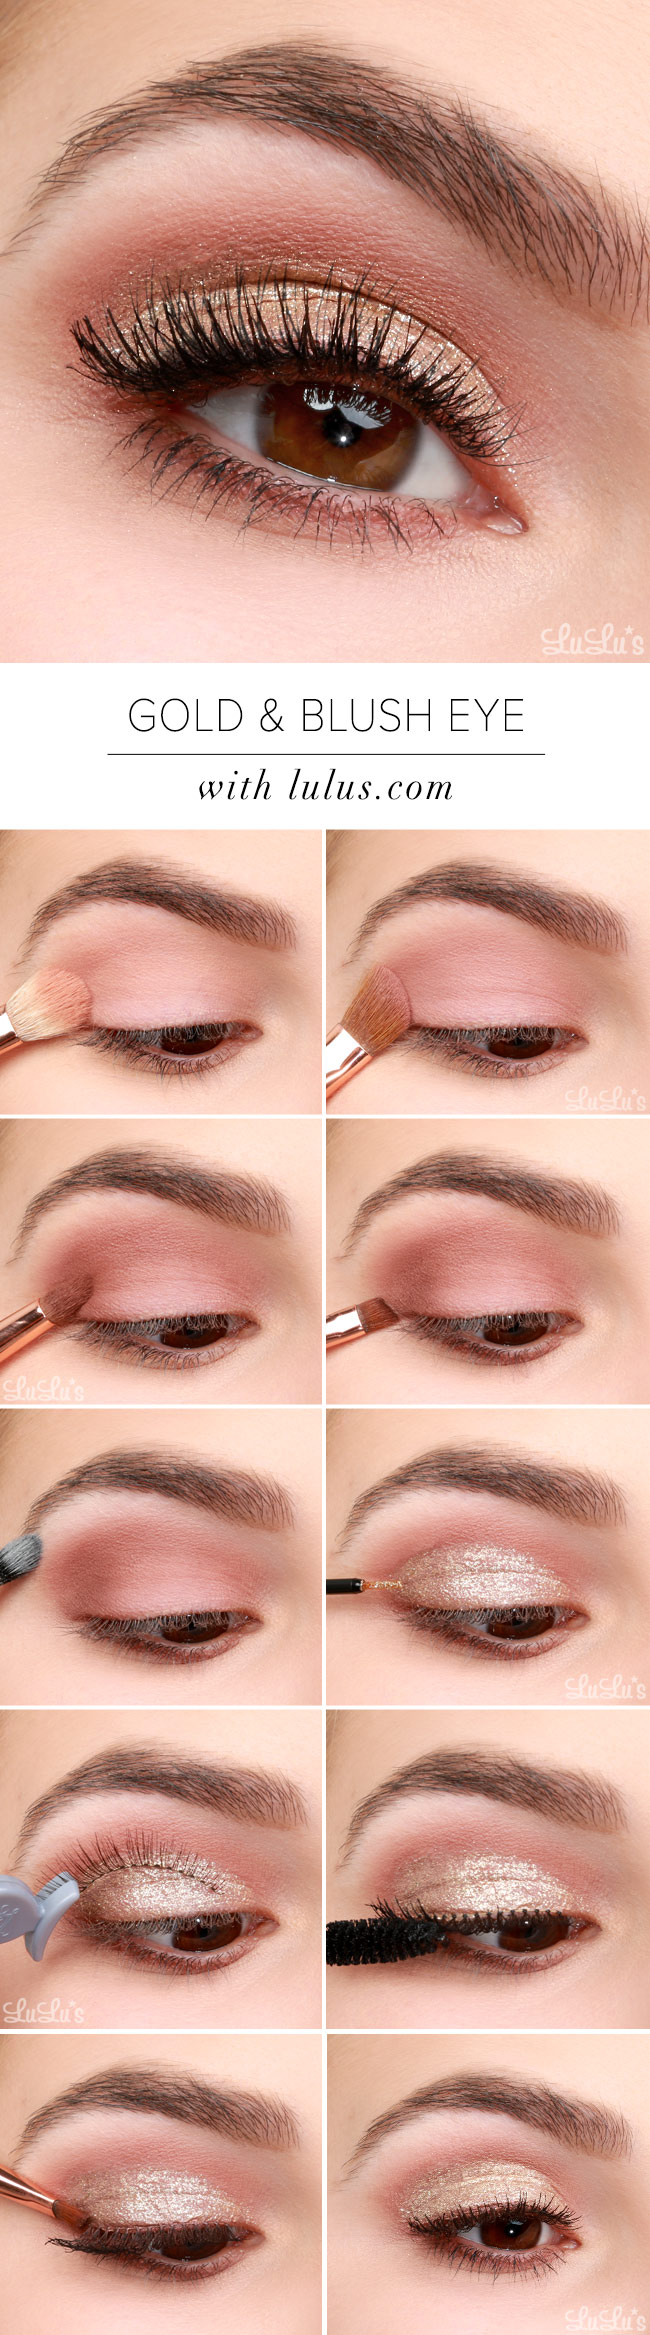 Lulus How To Gold And Blush Valentines Day Eye Makeup Tutorial